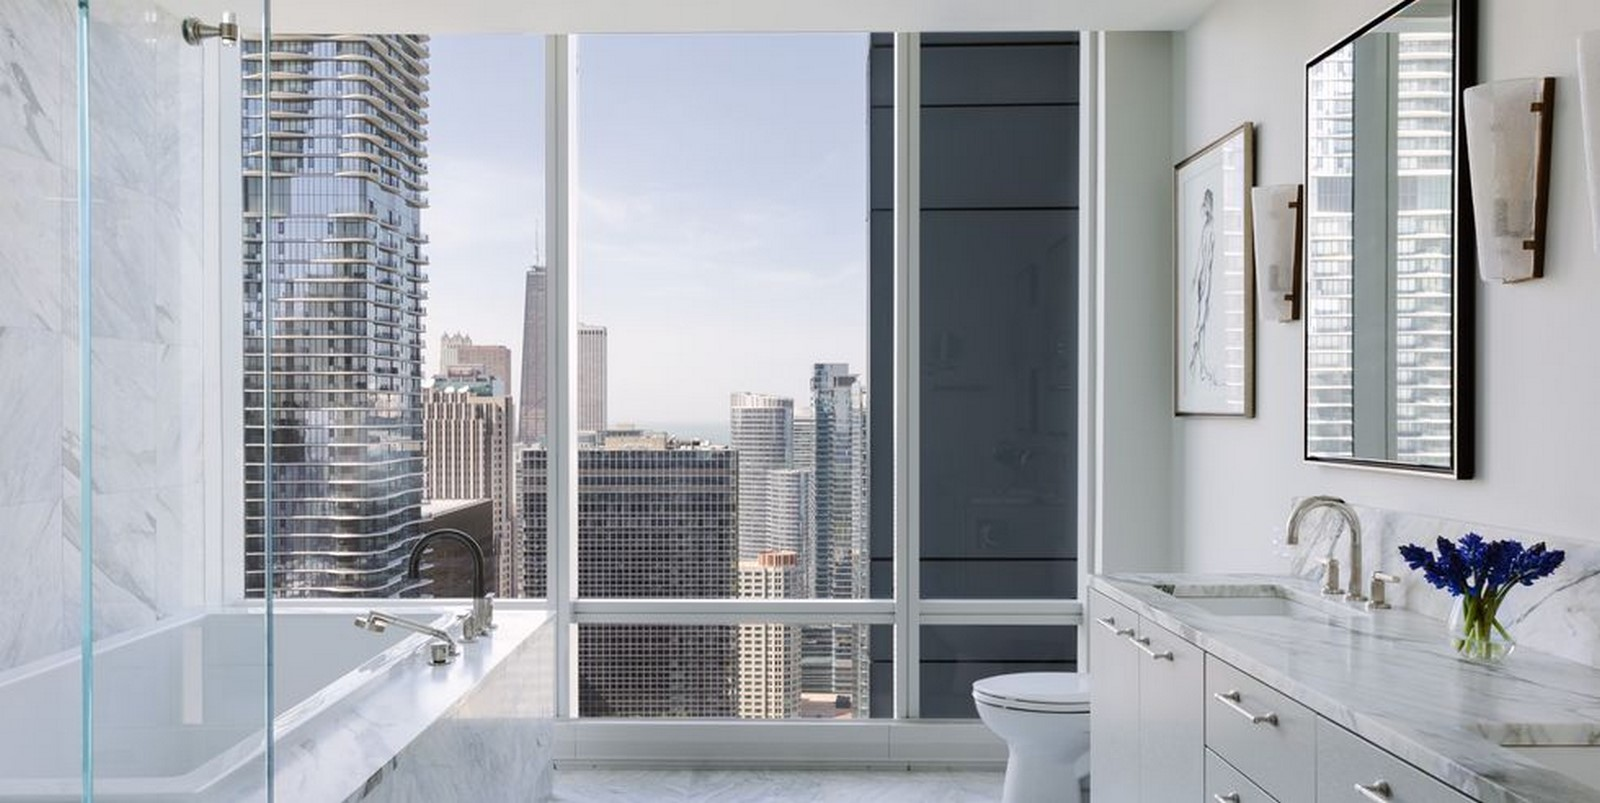 Bathroom with a View - Sheet1